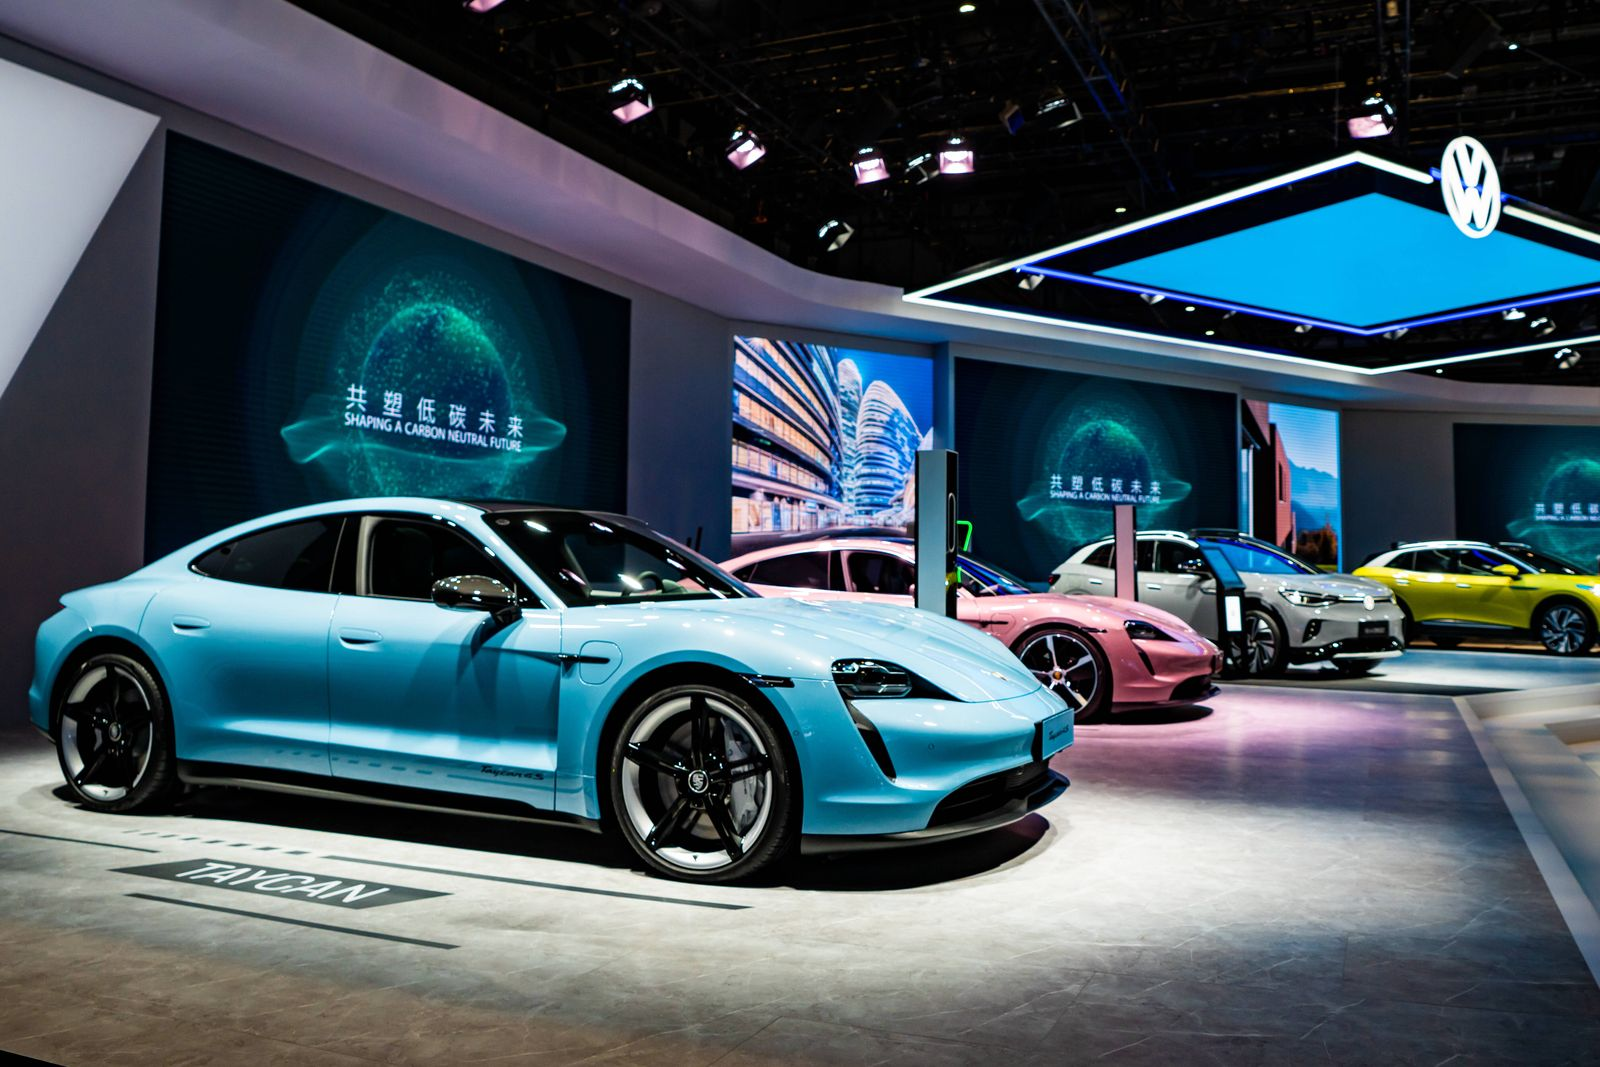 SHANGHAI, CHINA - NOVEMBER 05: A Porsche Taycan electric car is on display during the 3rd China International Import Ex